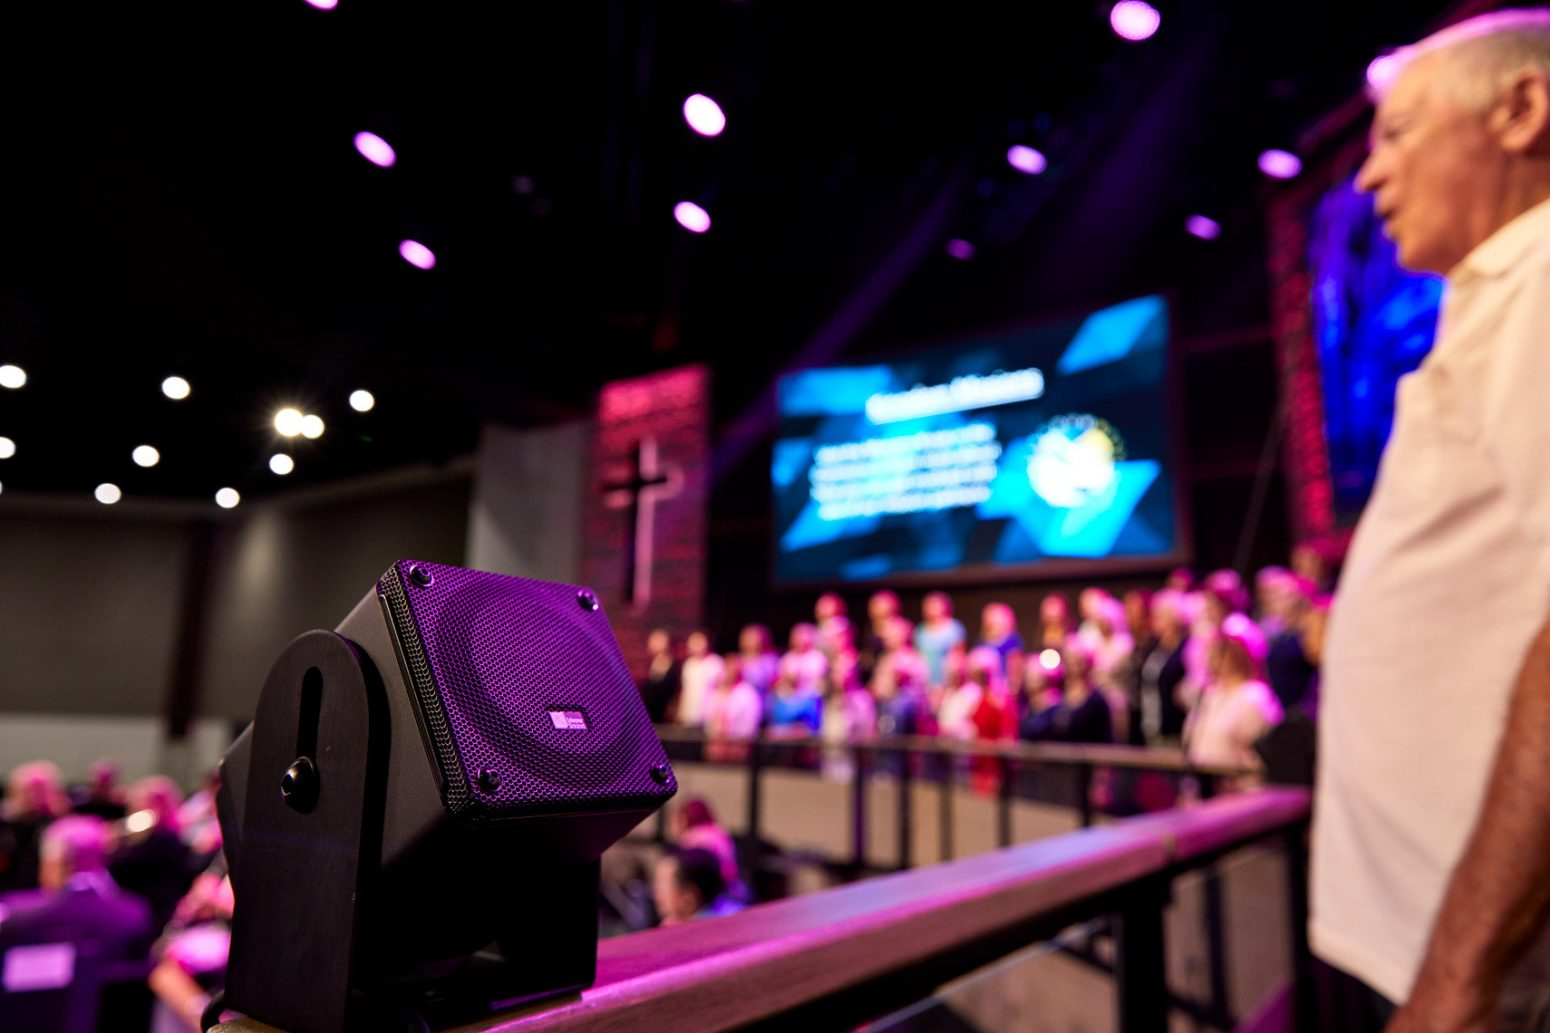 JBL speakers with AVL sound, pictured during service at Tampa church.